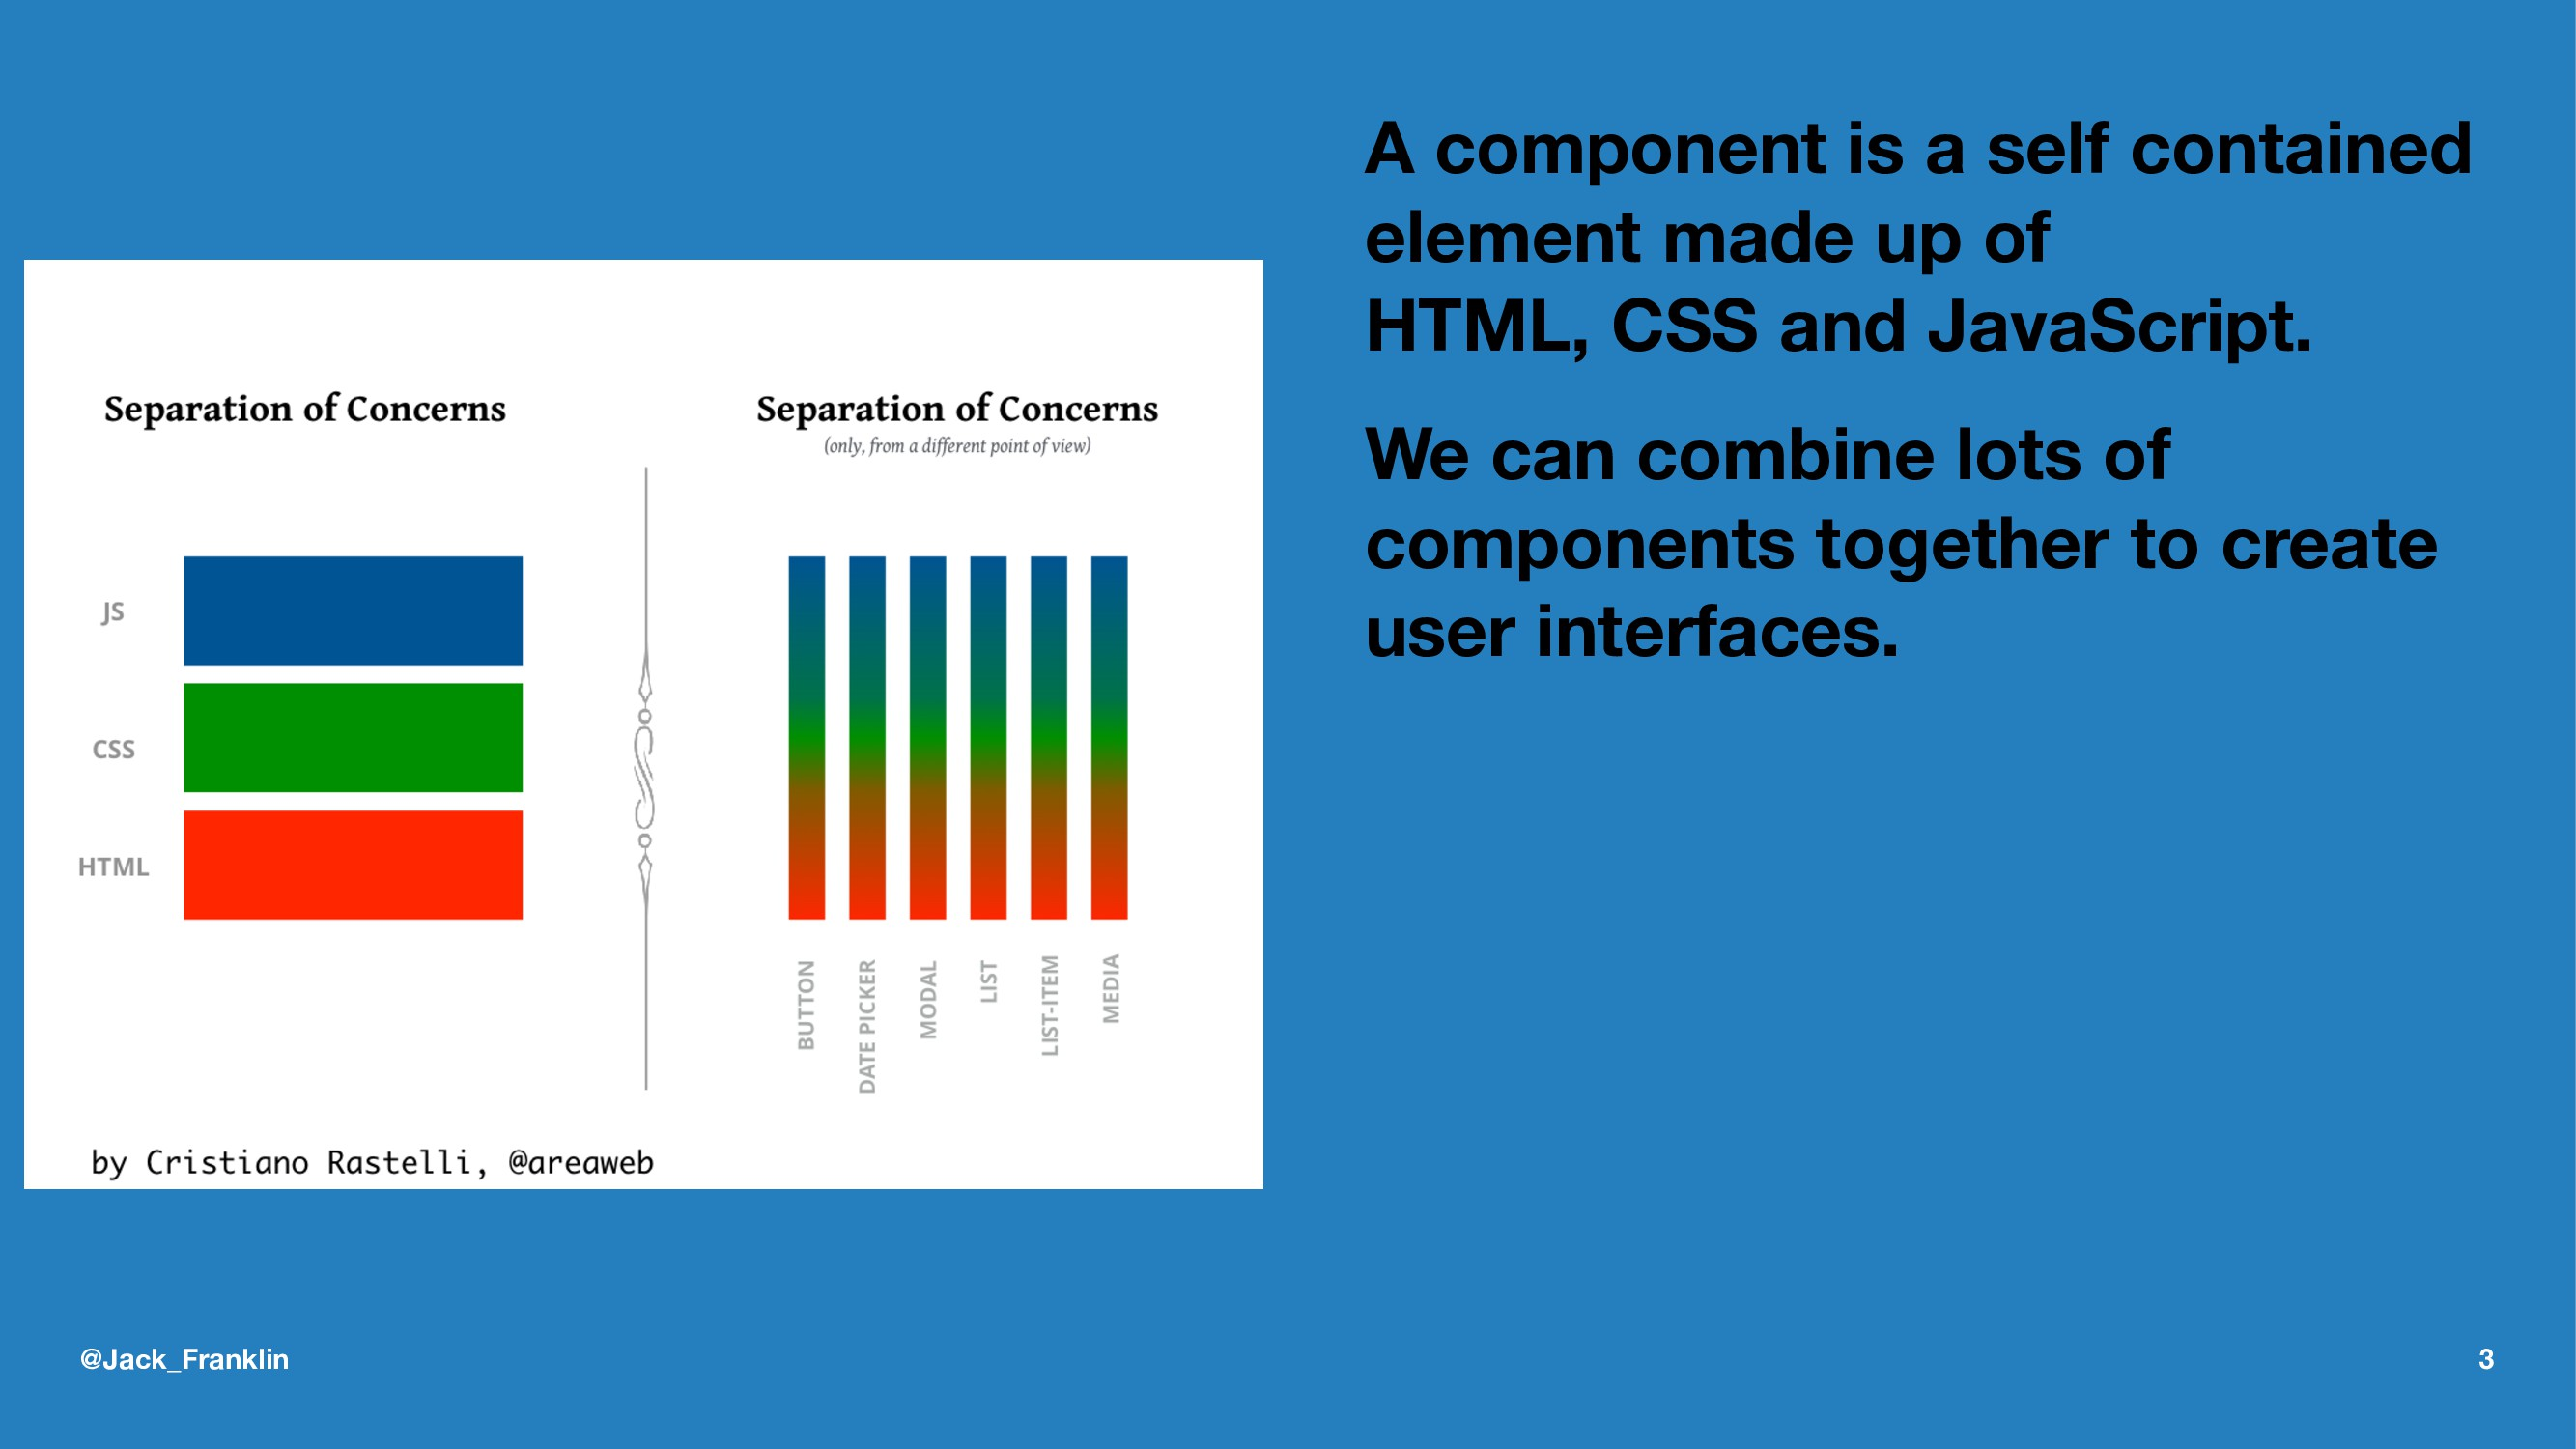 A component is a self contained element made up...